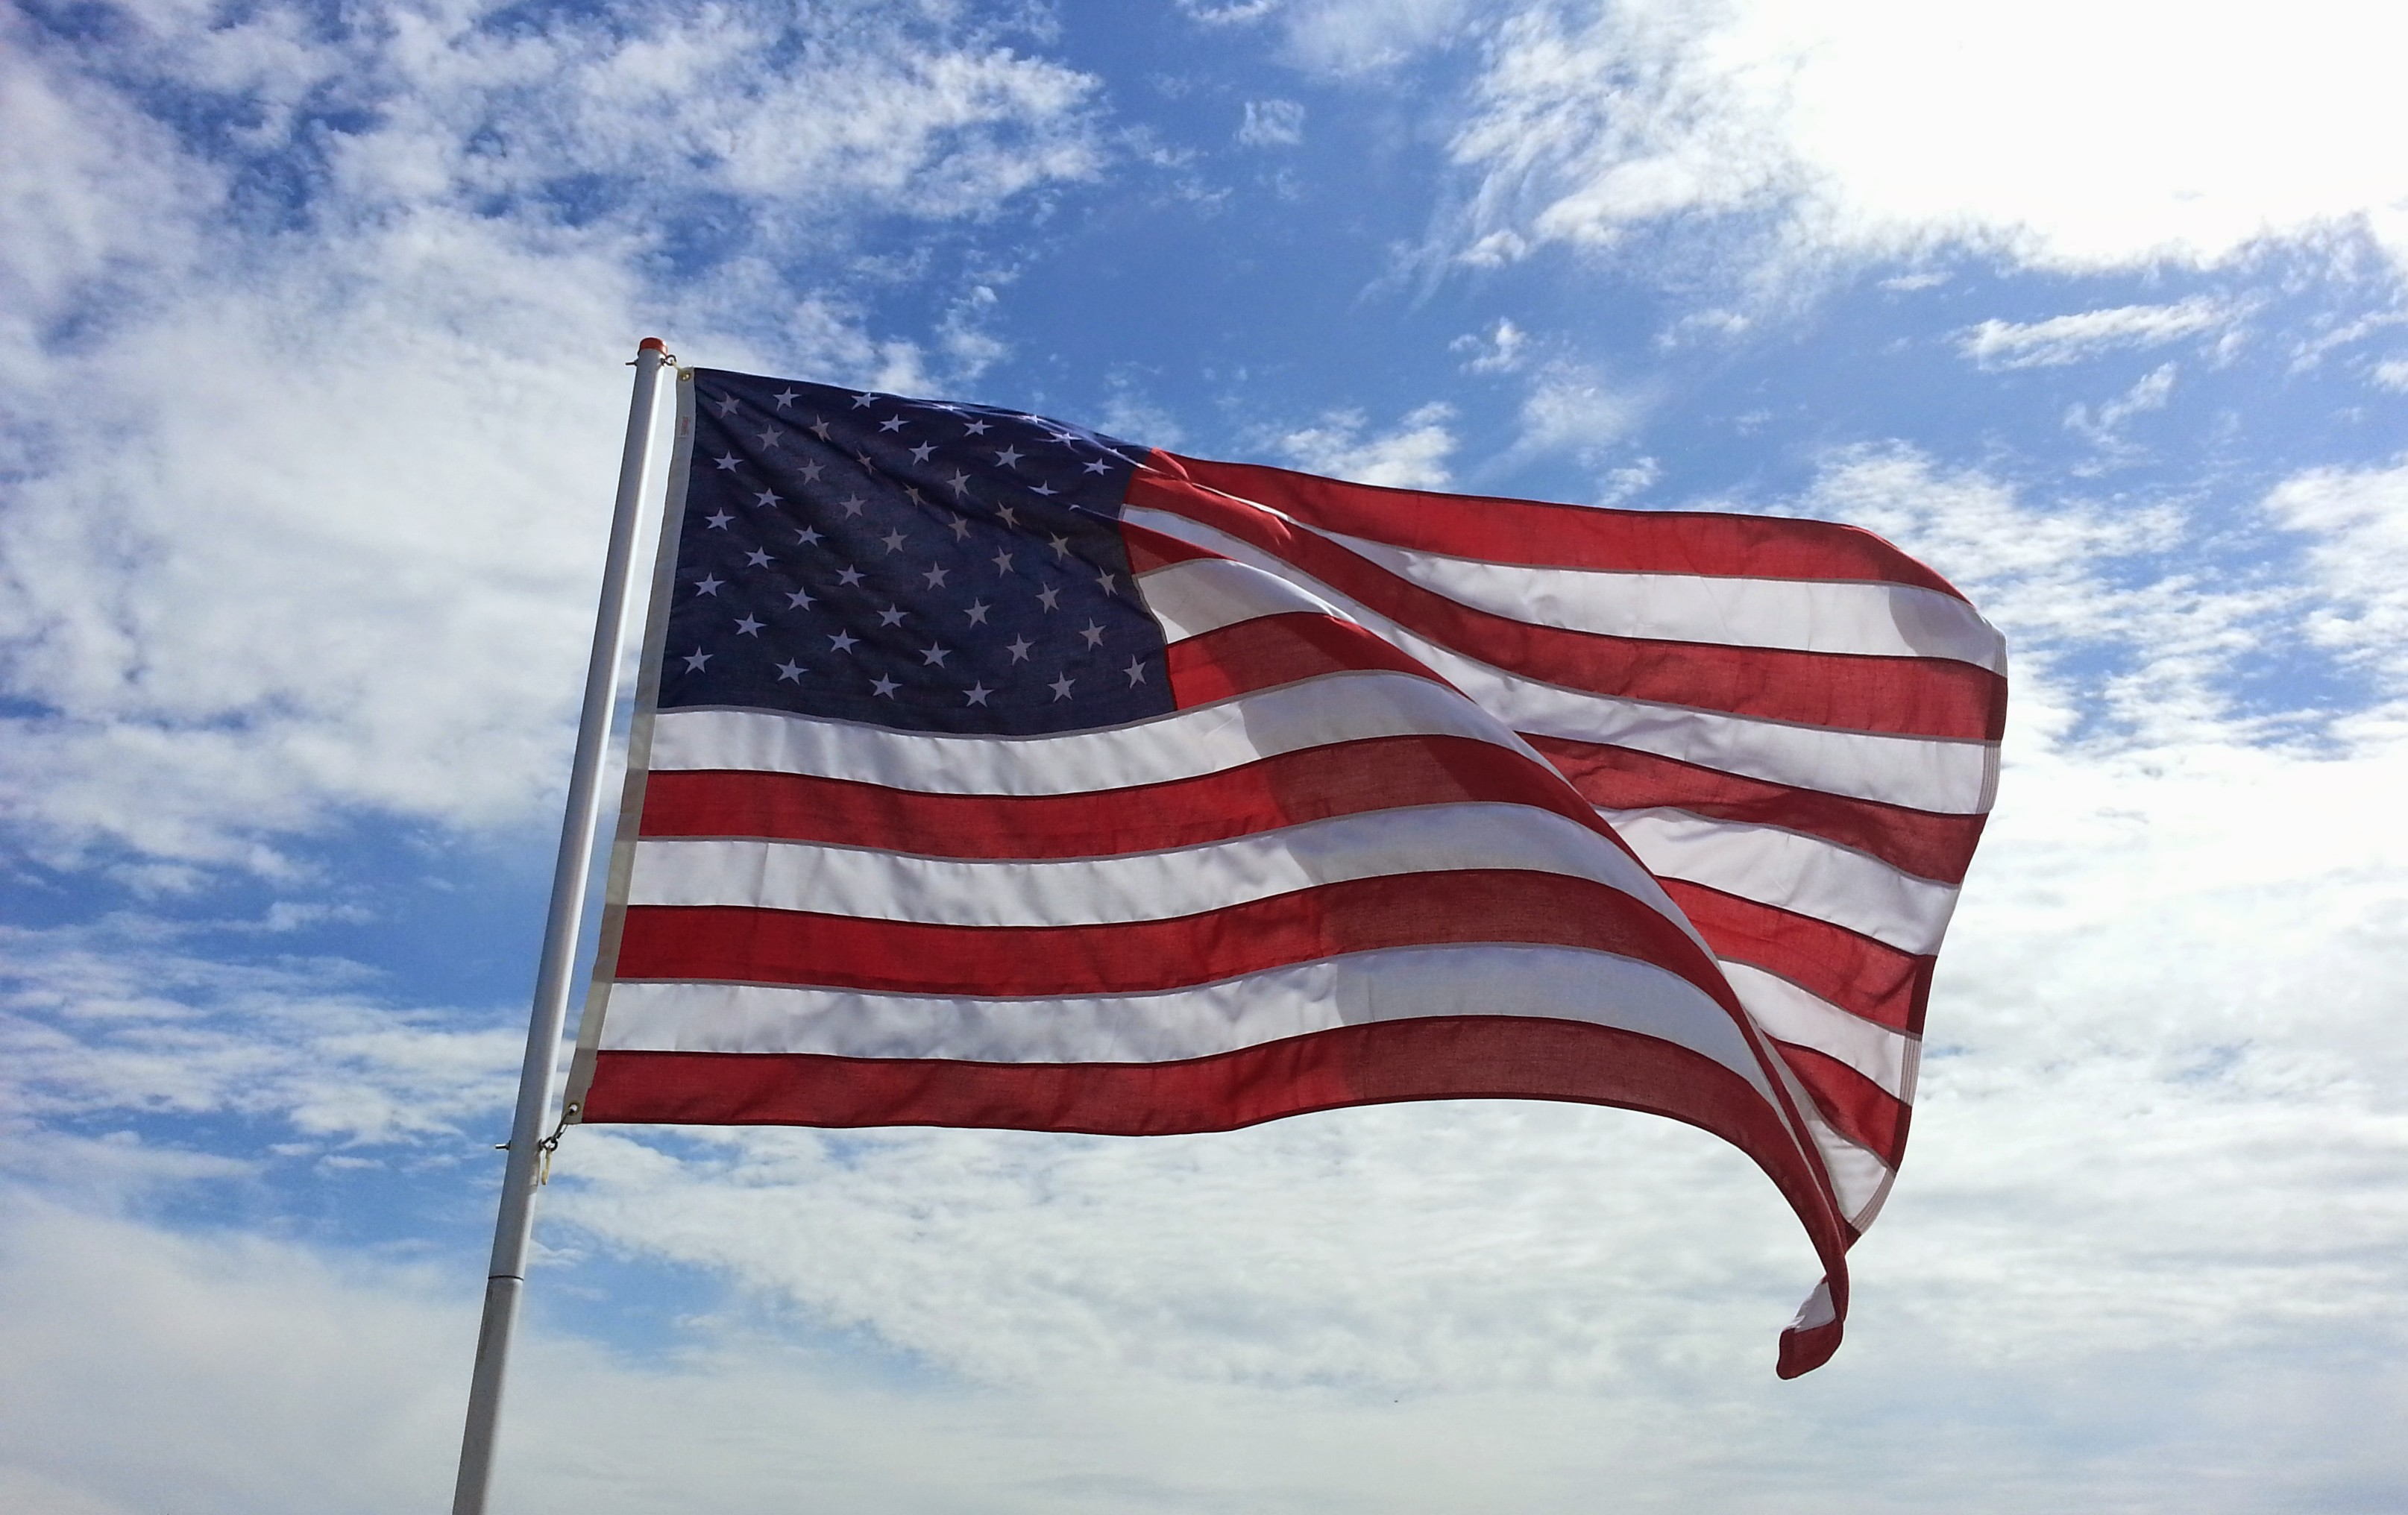 American Flag blows in the wind against  a blue sky with cloud